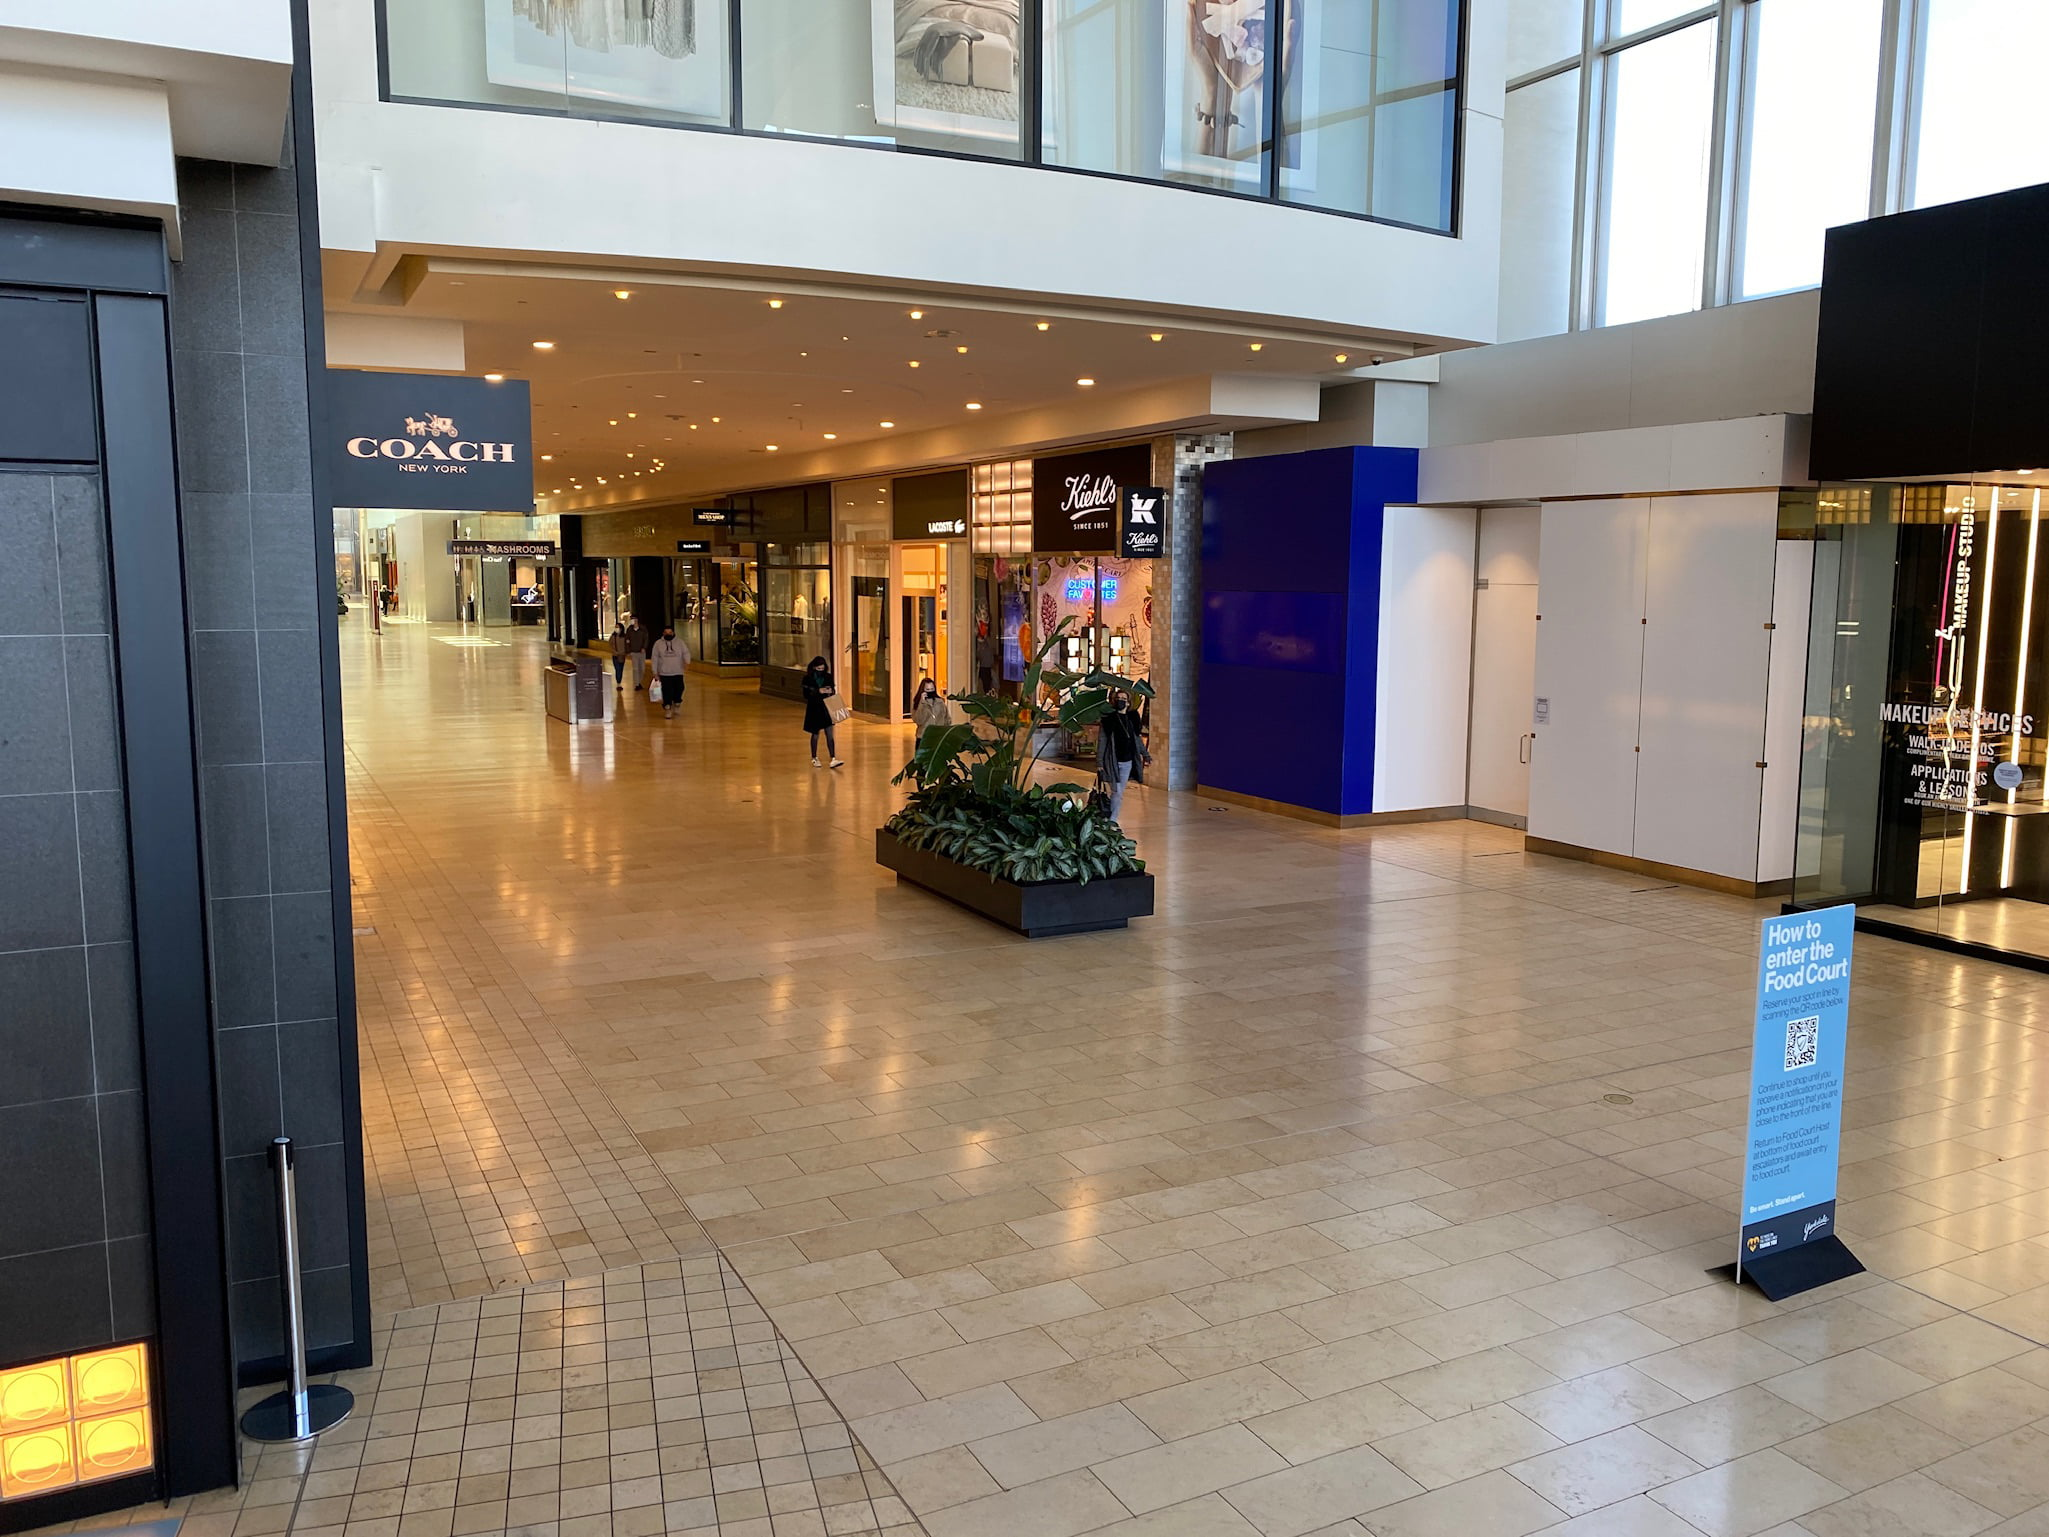 Kiehls, Coach, Former Bose location at Yorkdale